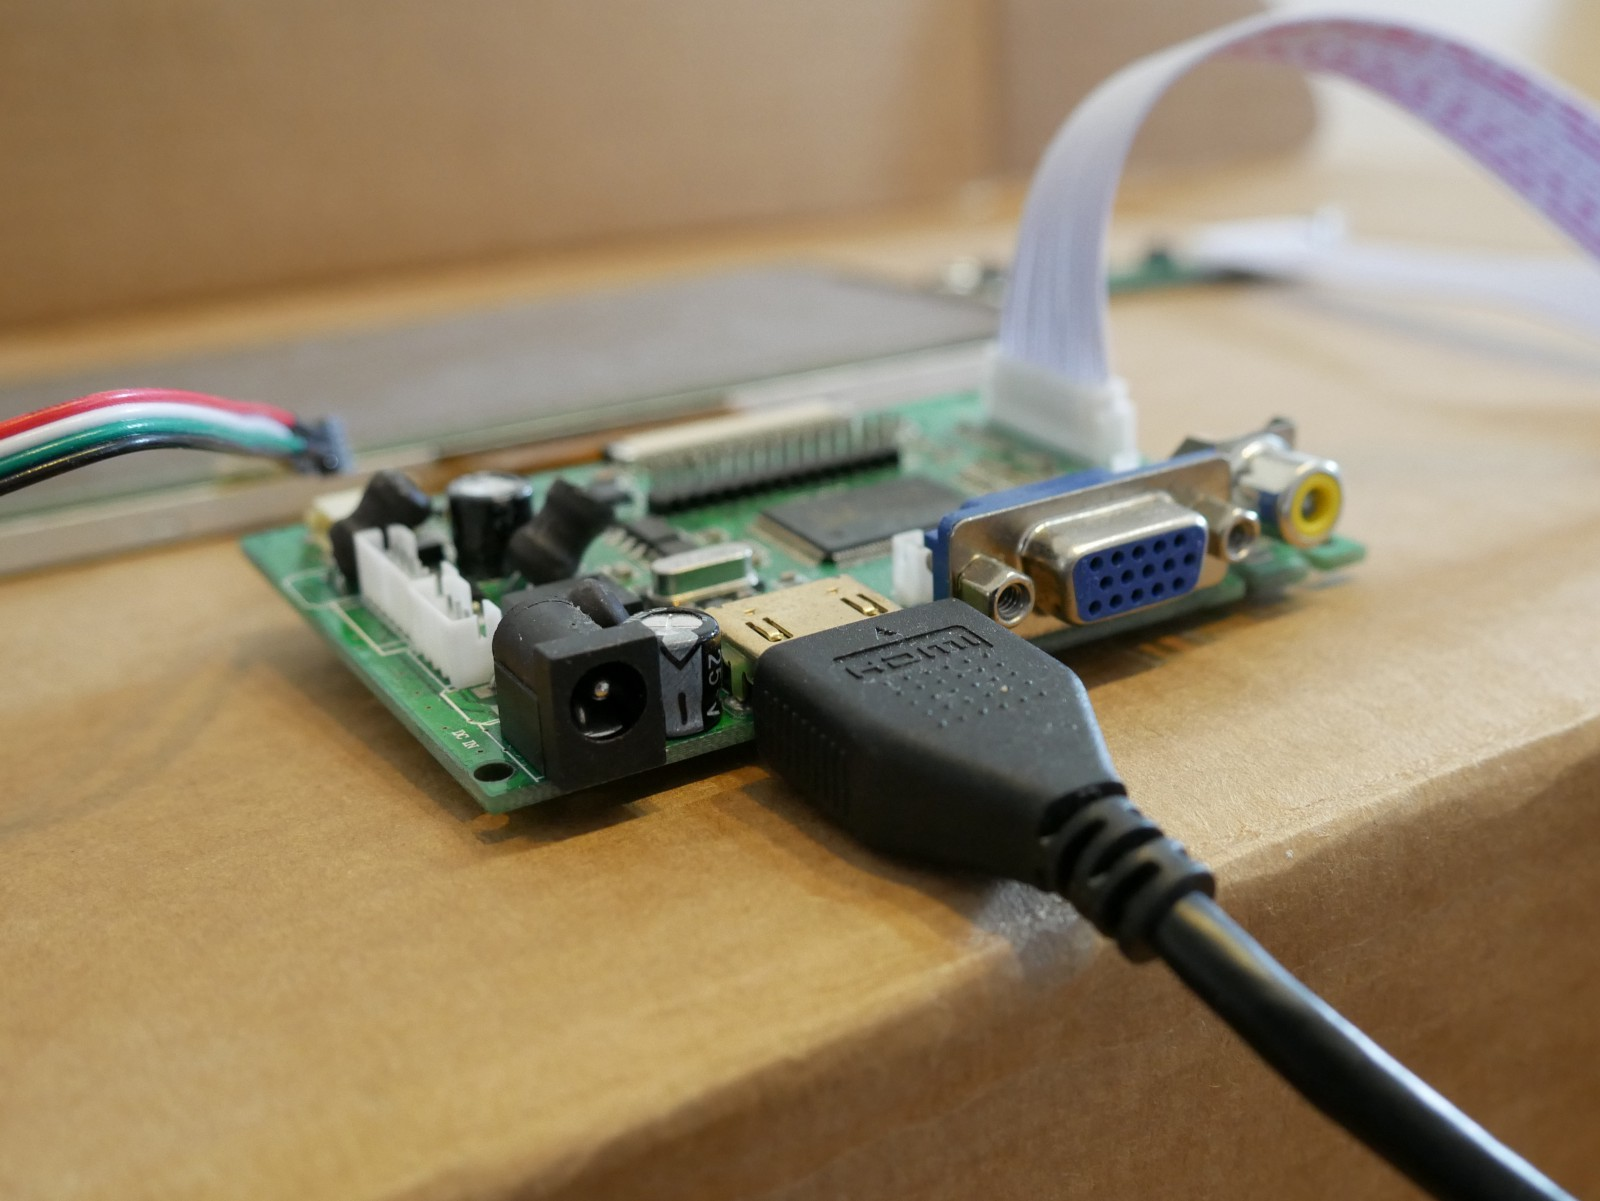 Building A Touchscreen Interface For Raspberry Pi Humanizing Tech Hdmi Home Wiring Diagram Smart In